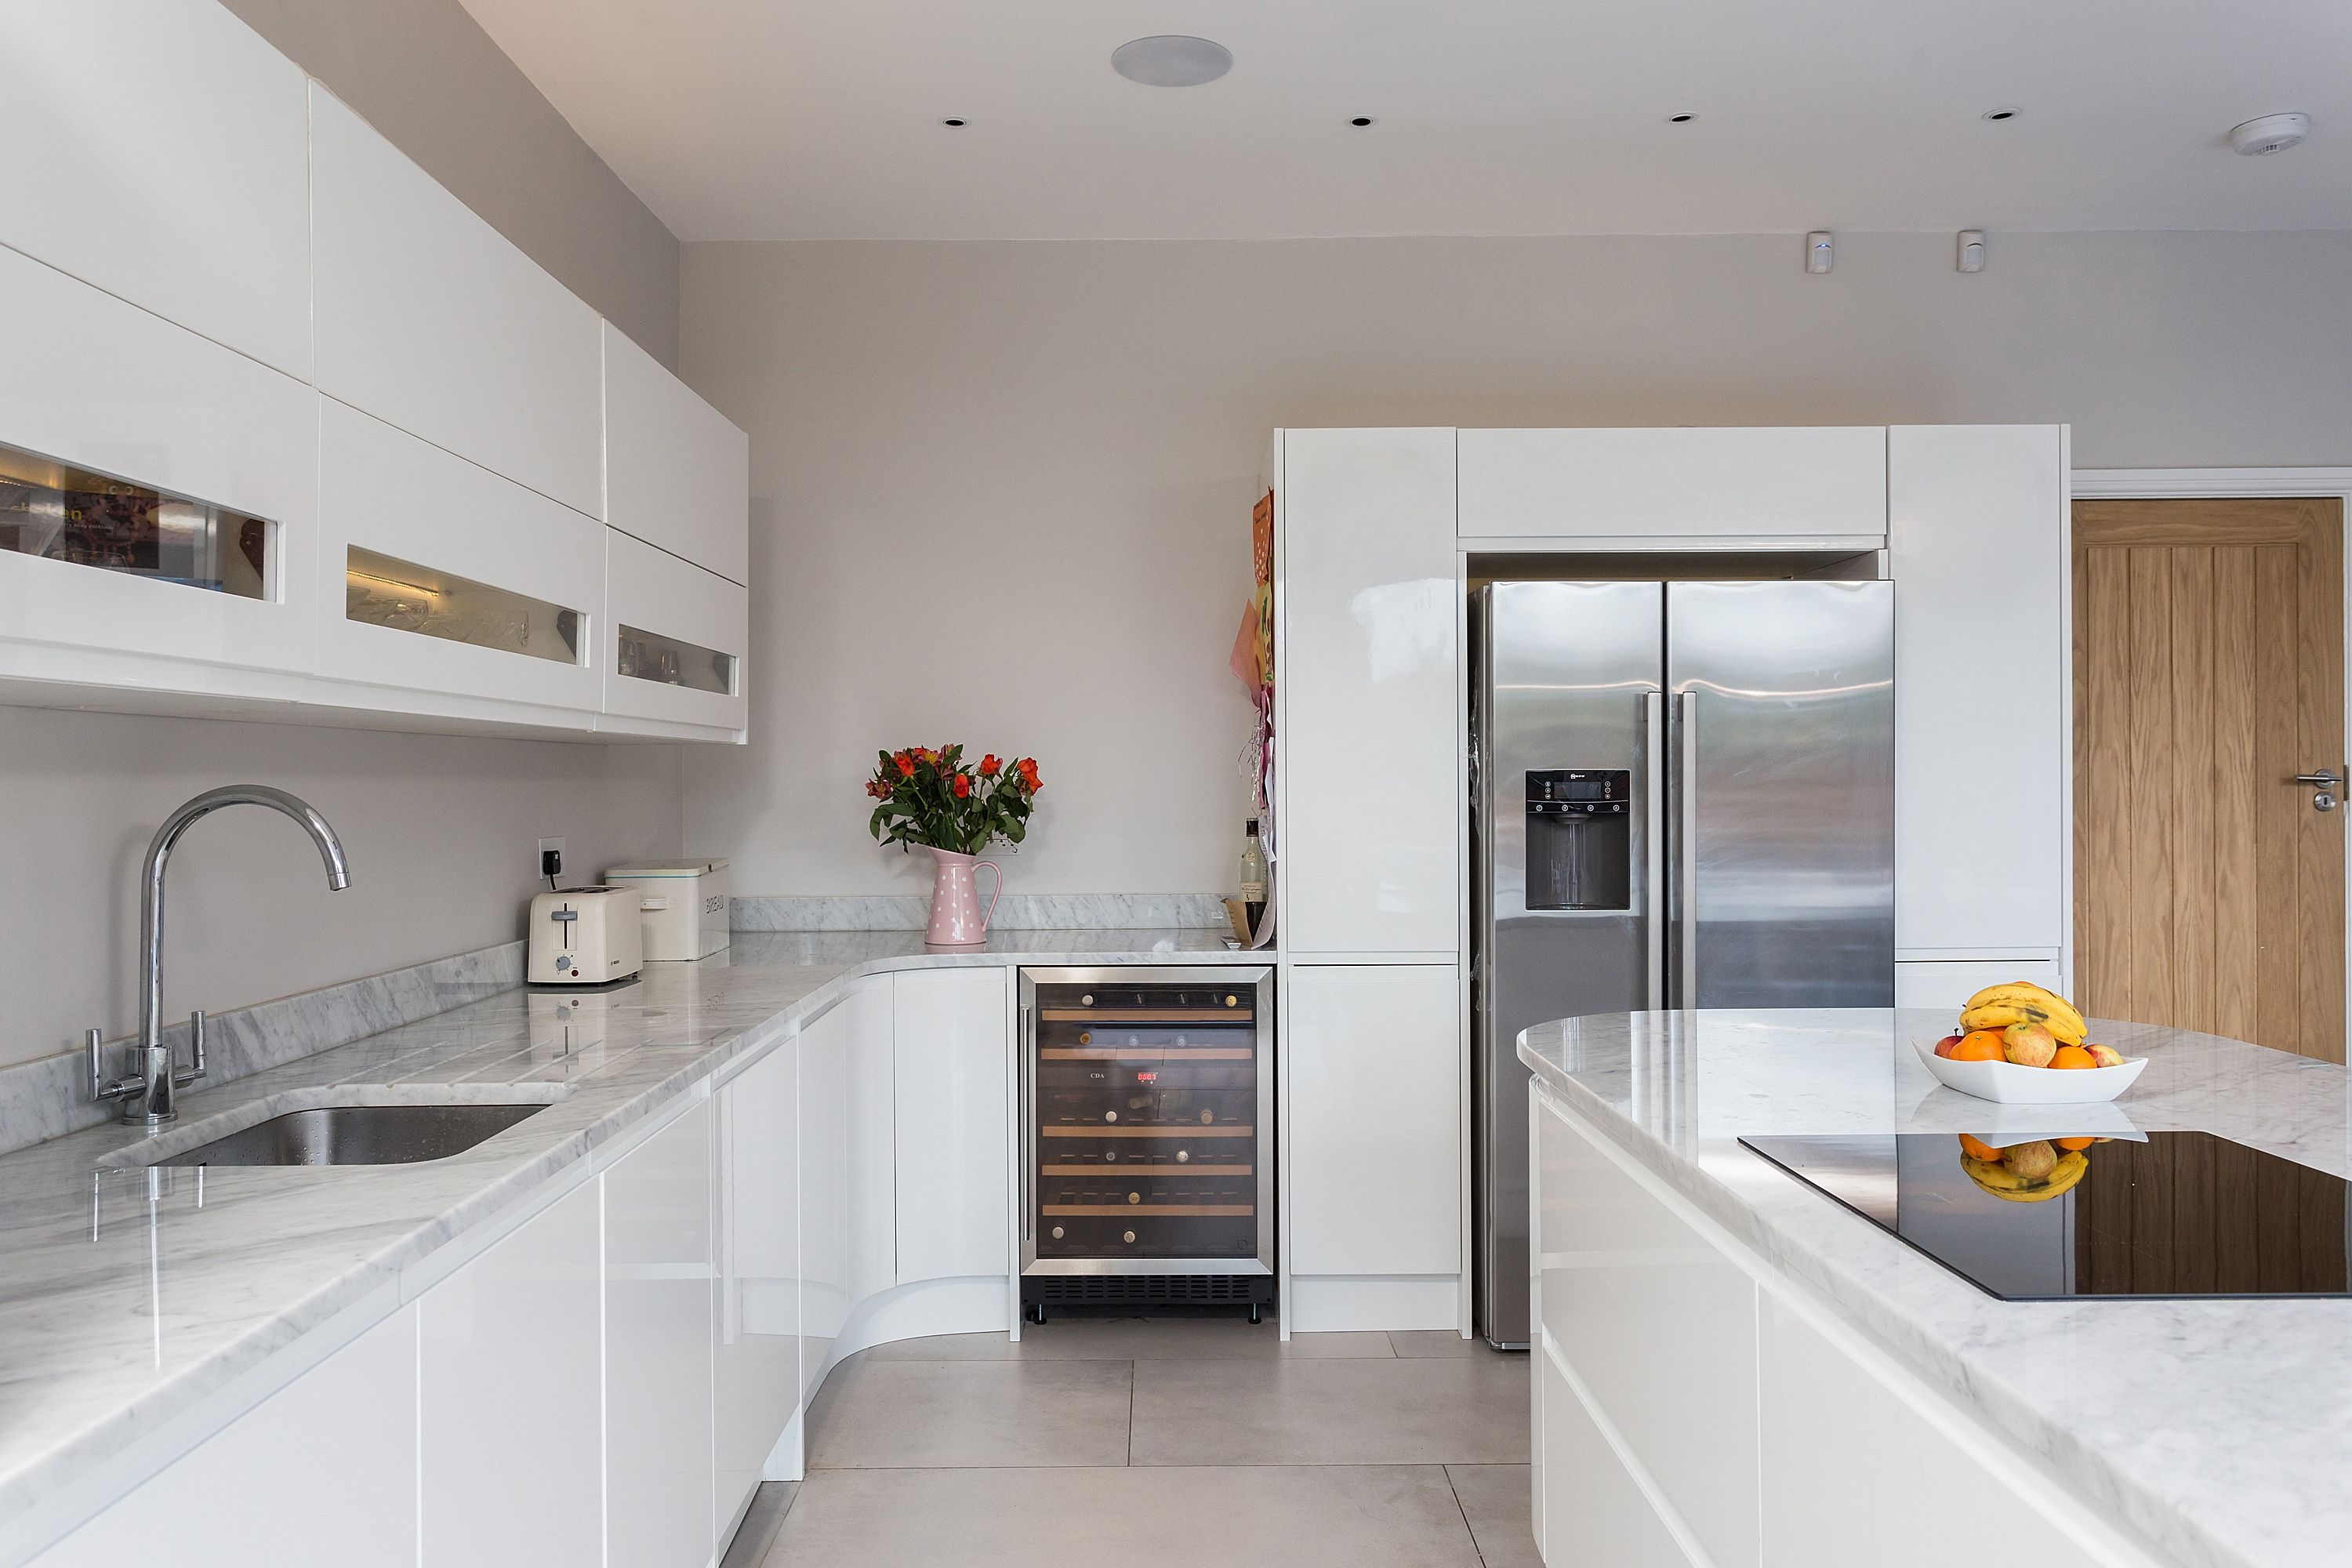 Handleless Gloss White Malmo Kitchen With Island And Carrera Marble Worktops Kitchen Room Design White Gloss Kitchen Ikea Kitchen Design